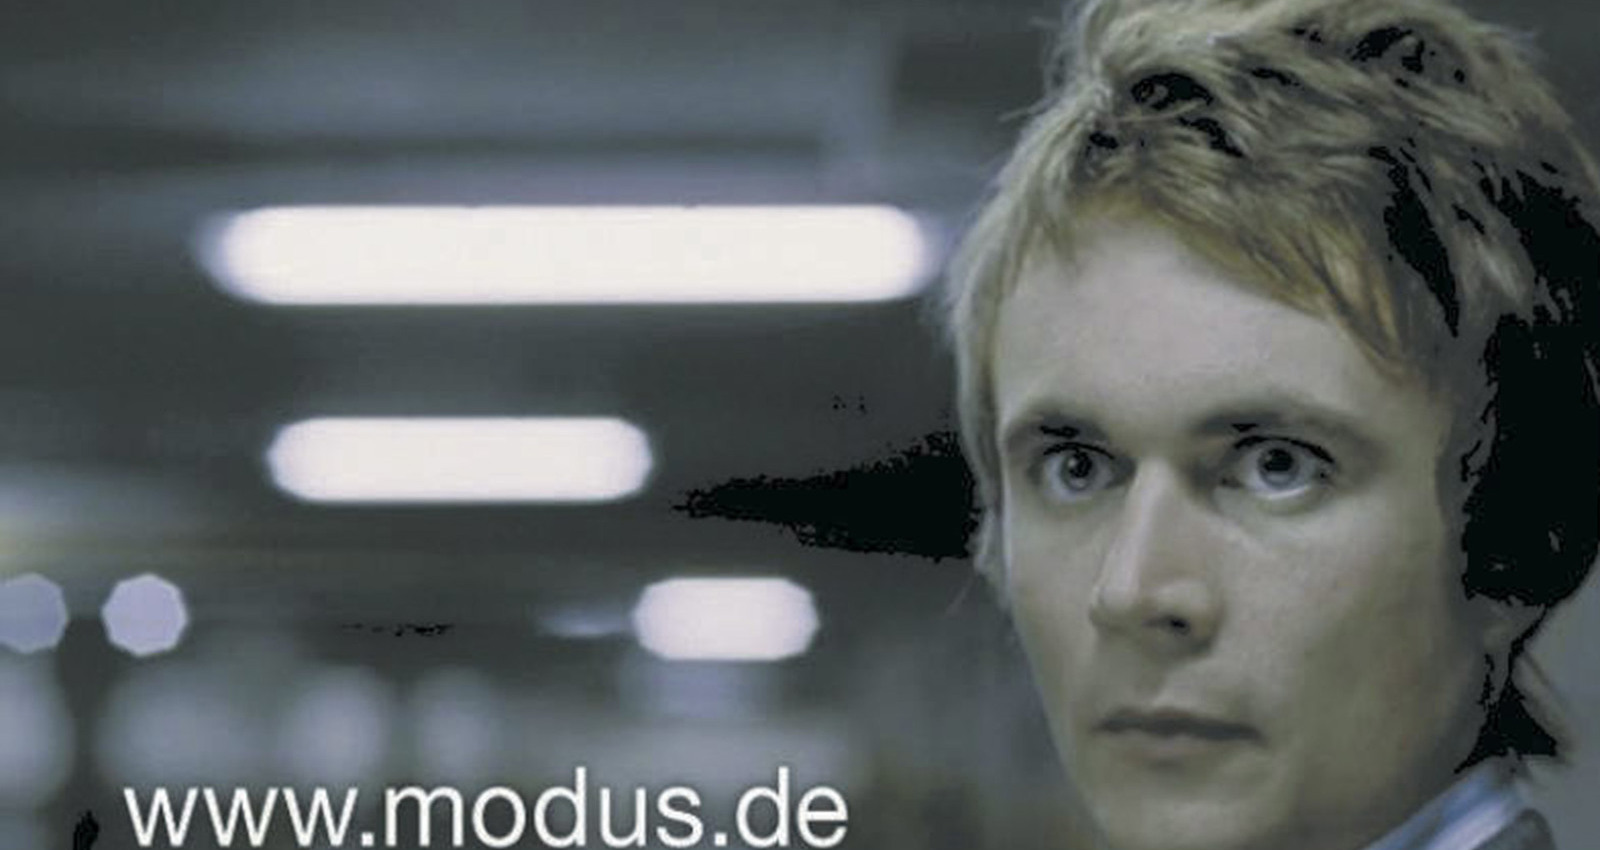 Modus - a channel hopper